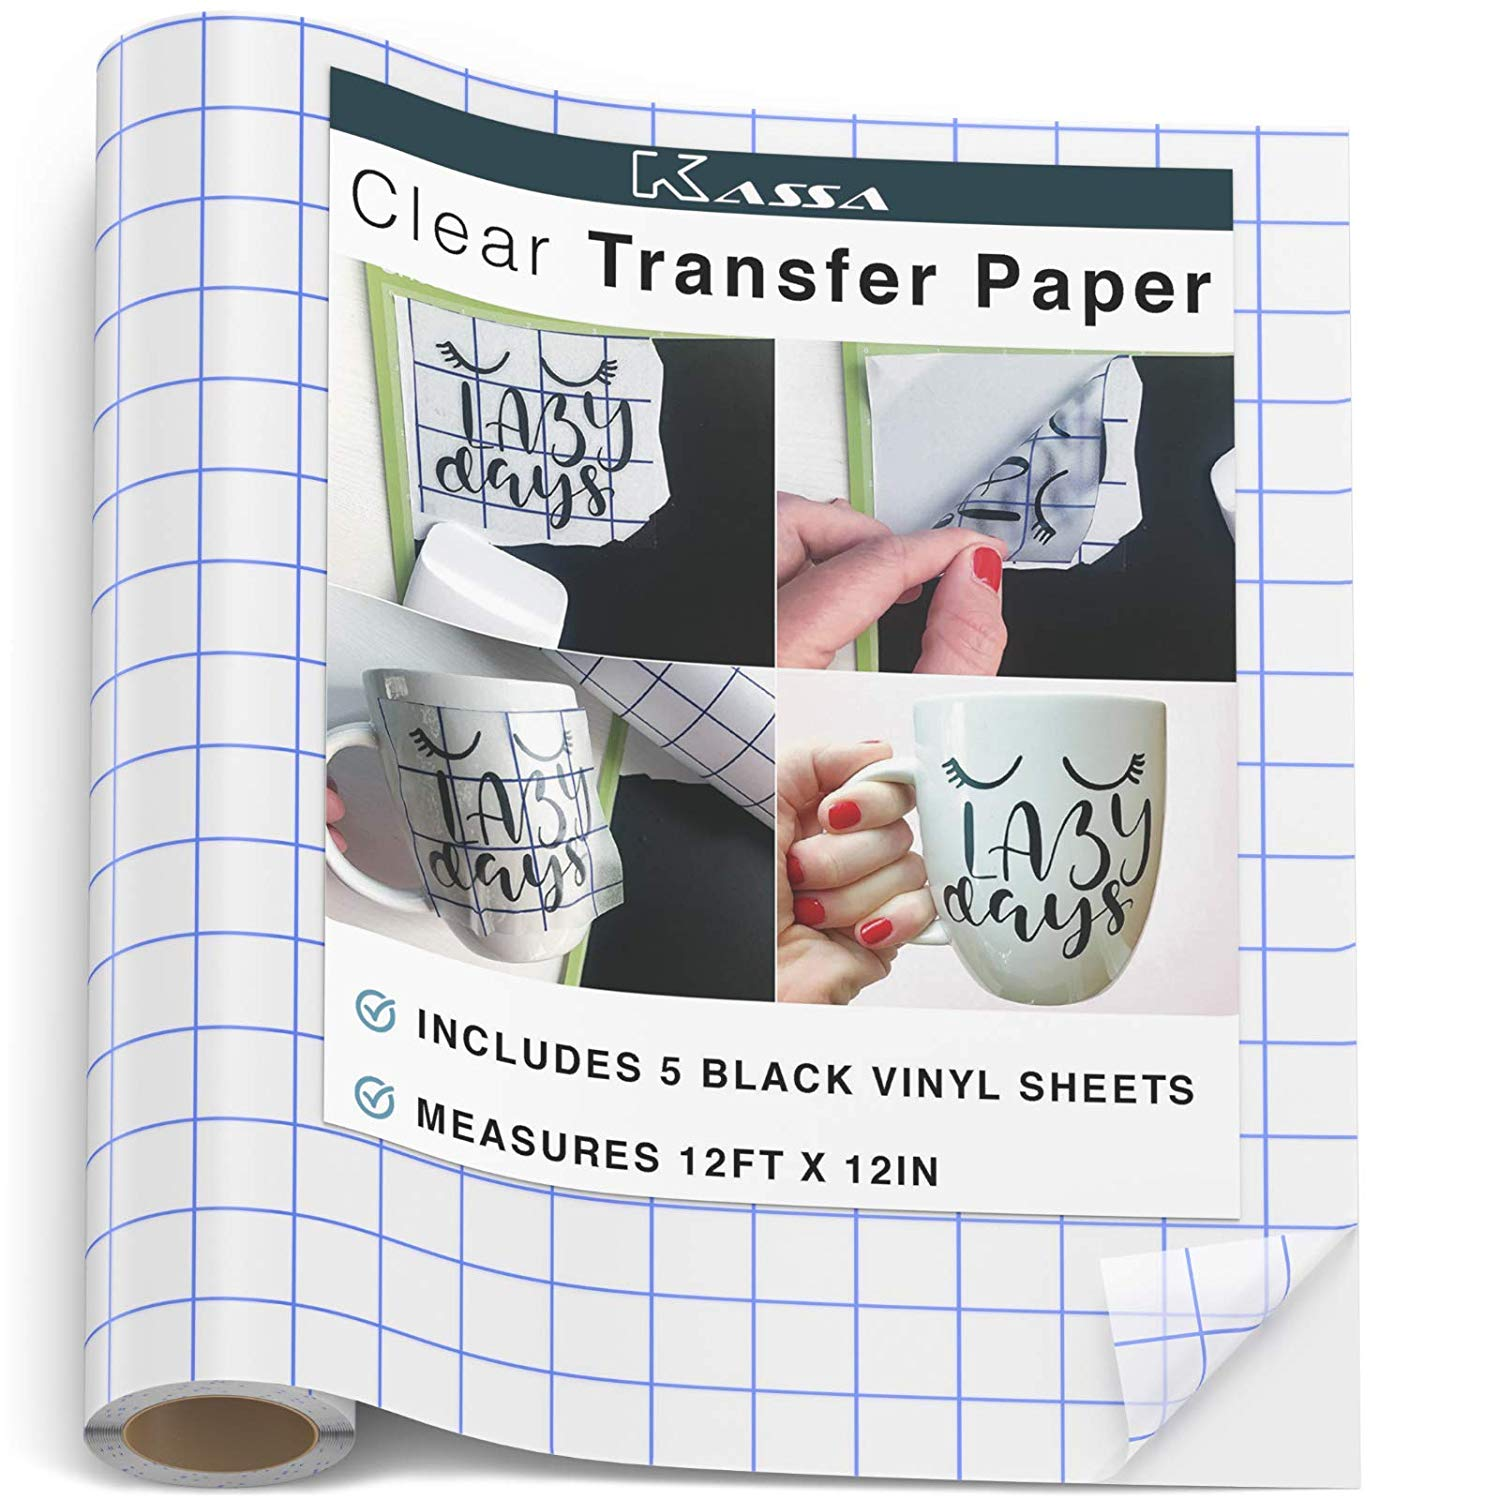 2 A4 Clear Sheets of Transfer of Application Tape users of Self Adhesive Vinyls